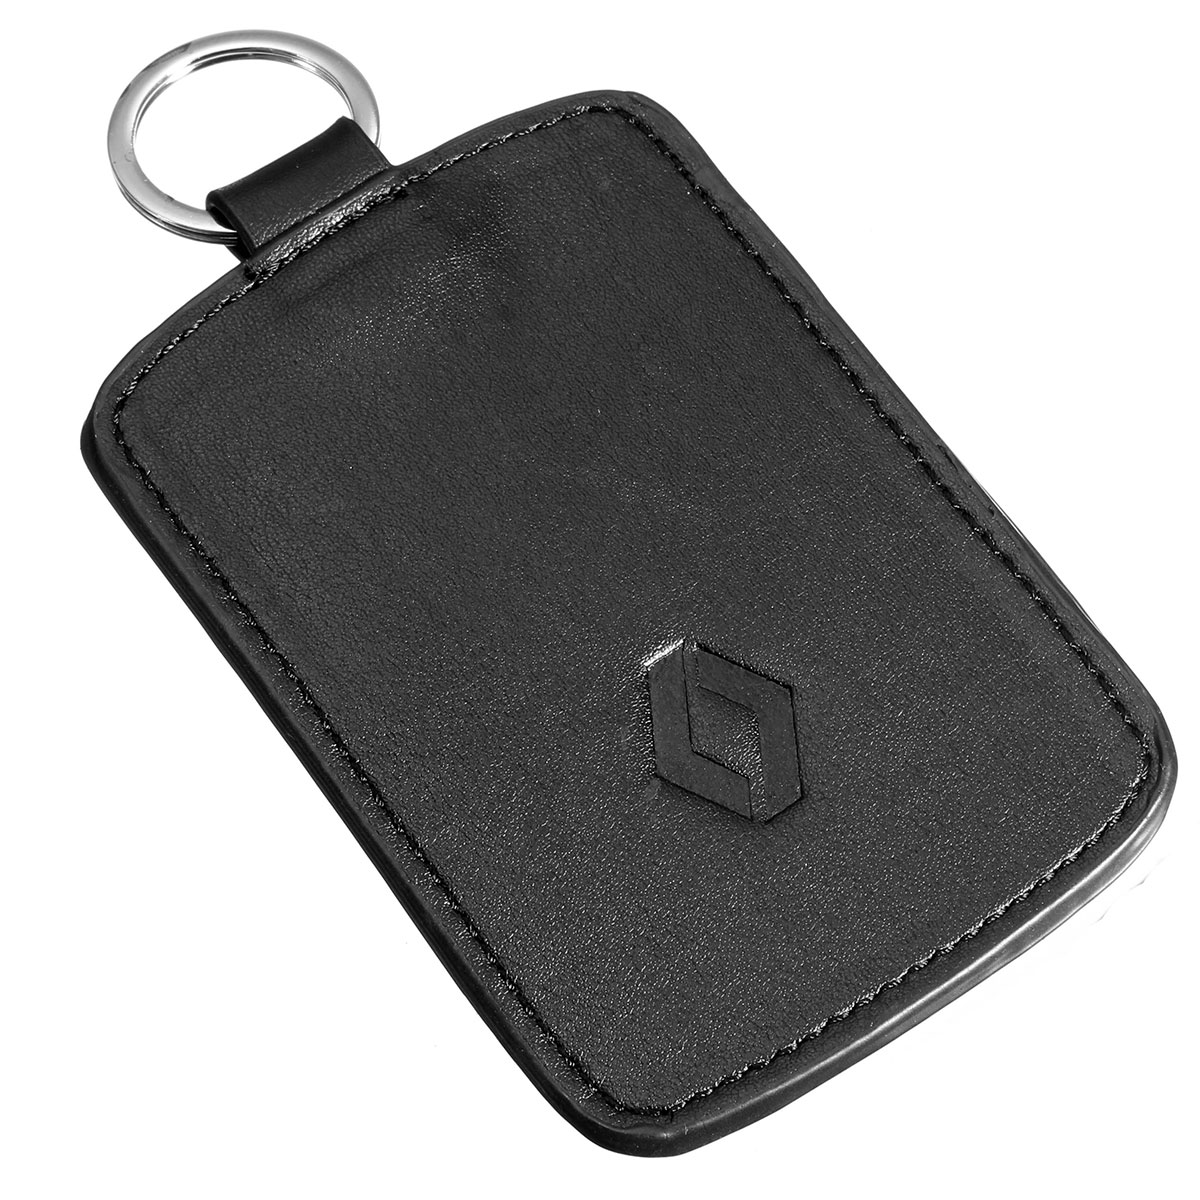 black leather car key cover case wallet holder shell for. Black Bedroom Furniture Sets. Home Design Ideas